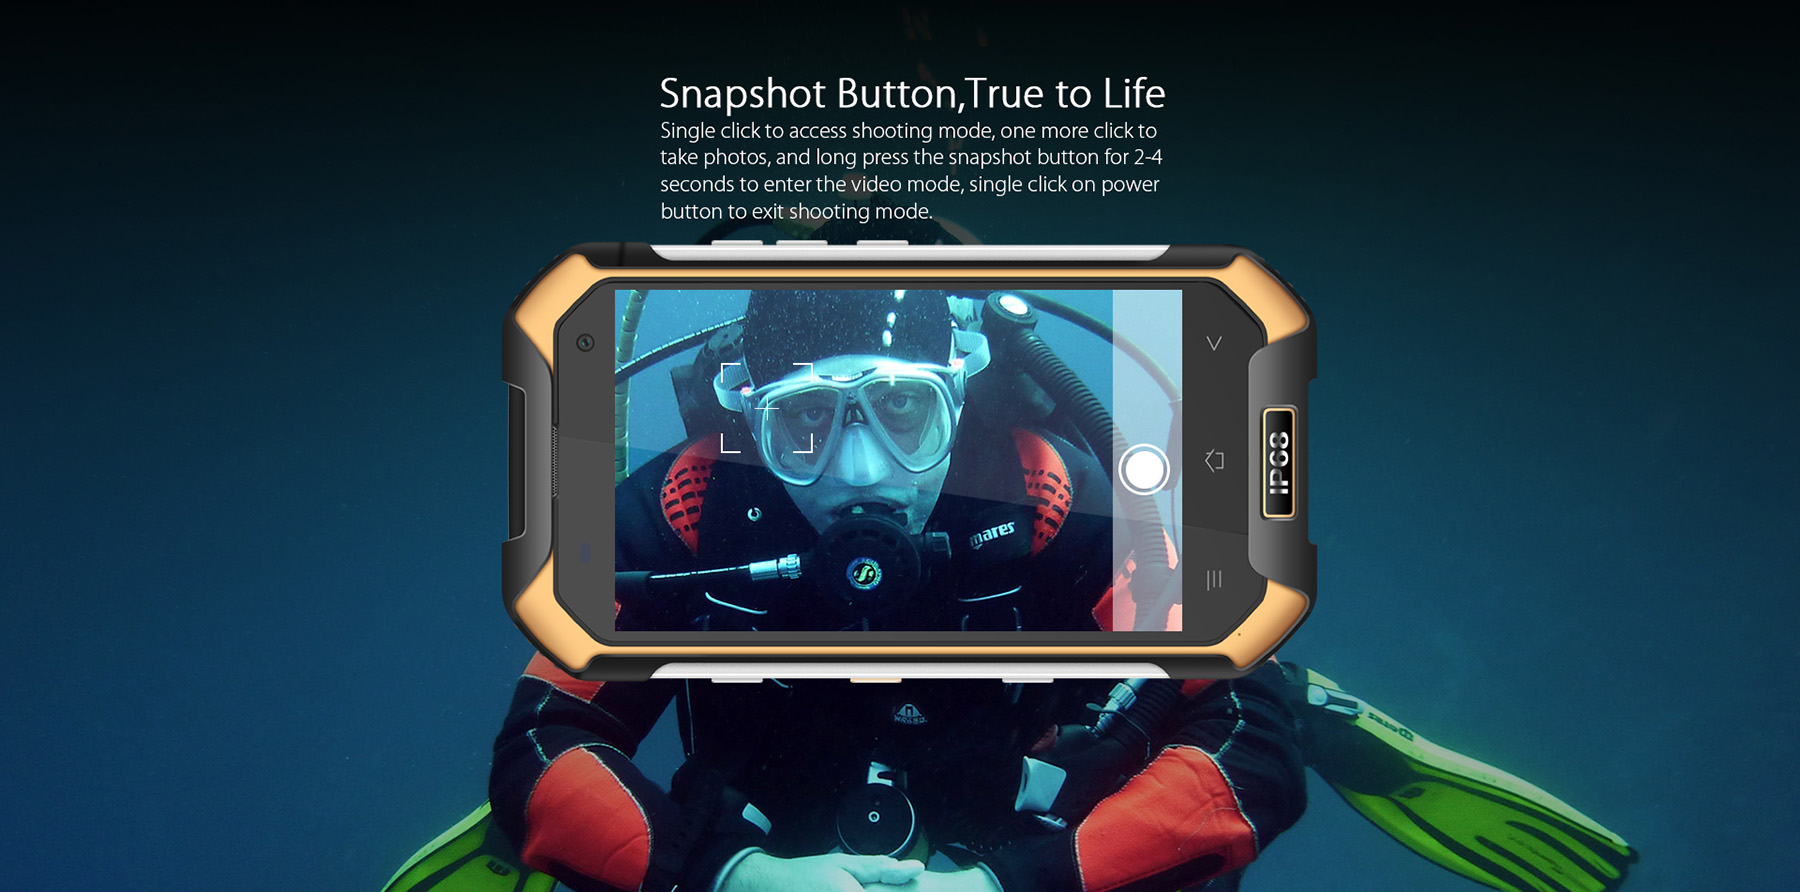 Blackview BV6000S Android 6.0 4.7 inch 4G Smartphone MTK6735 1.3GHz Quad Core 2GB RAM 16GB ROM Waterproof Shockproof NFC GPS